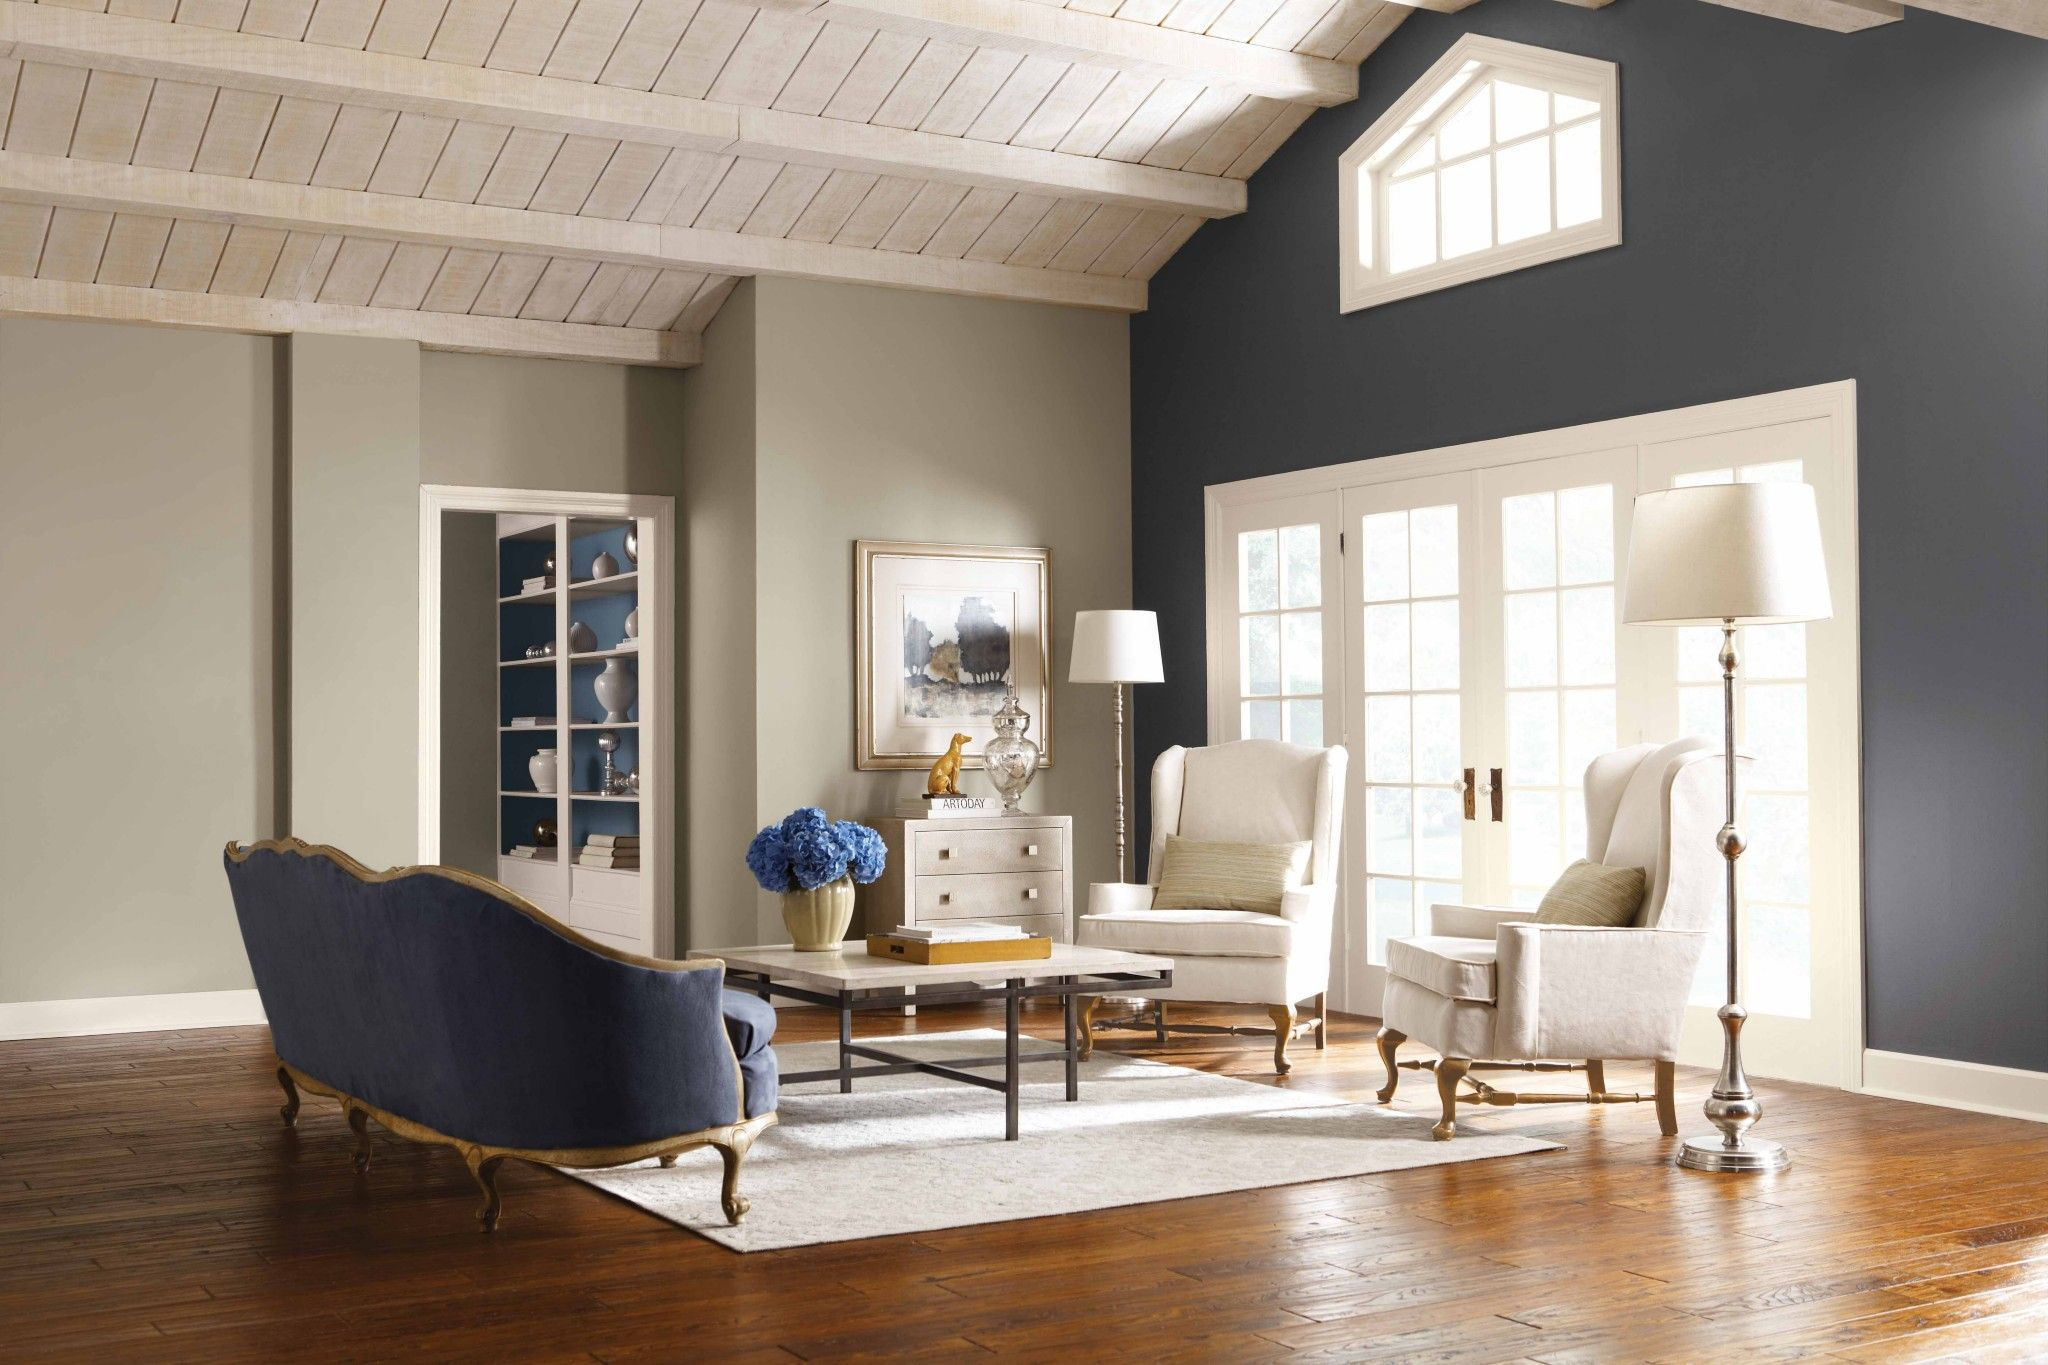 pin by d gagnon on bedroom ideas accent walls in living on best color to paint living room walls id=42026